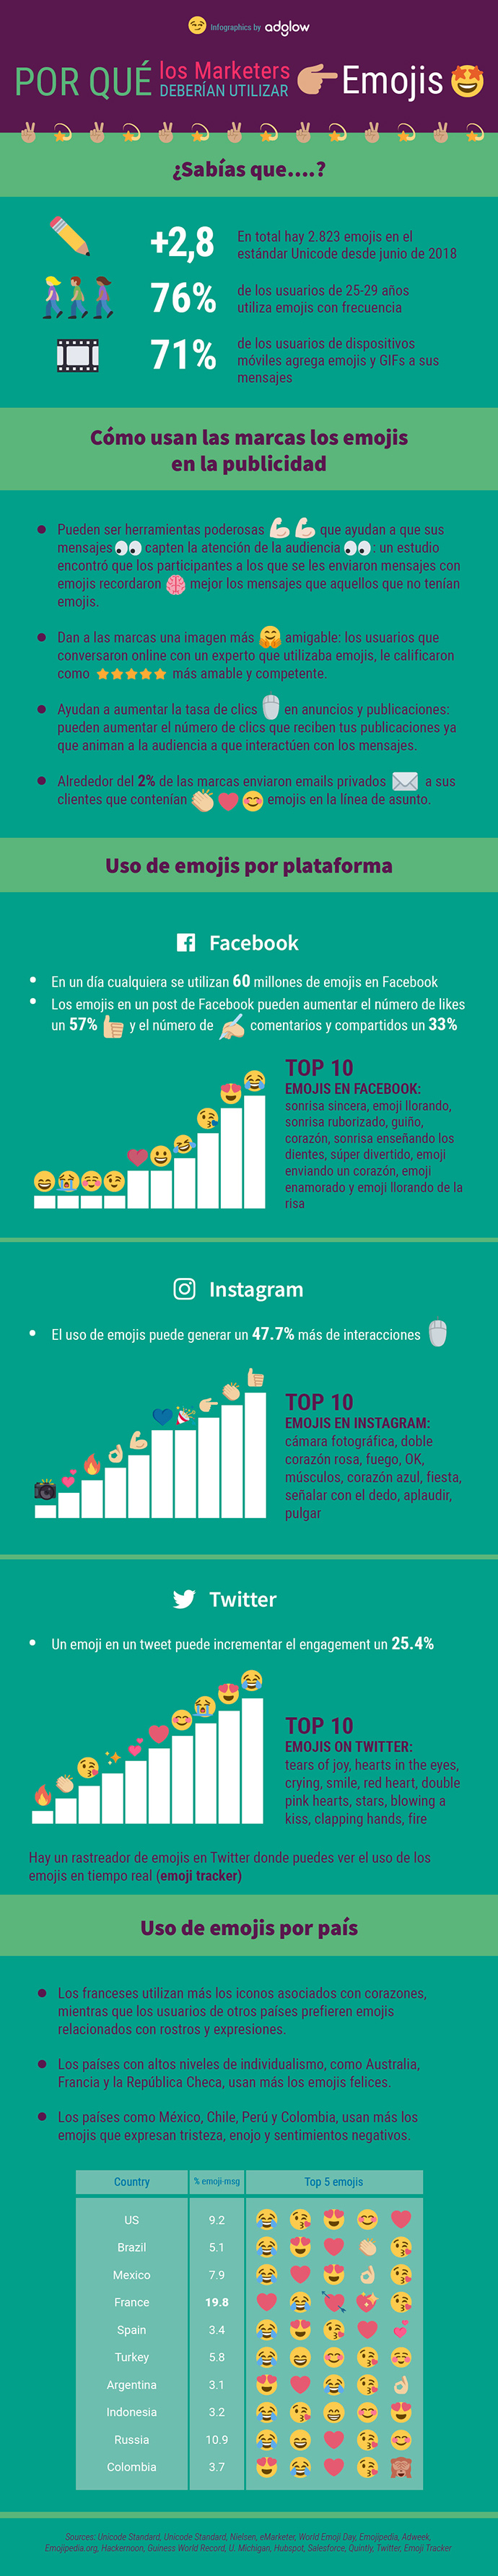 Por qué usar emojis en marketing